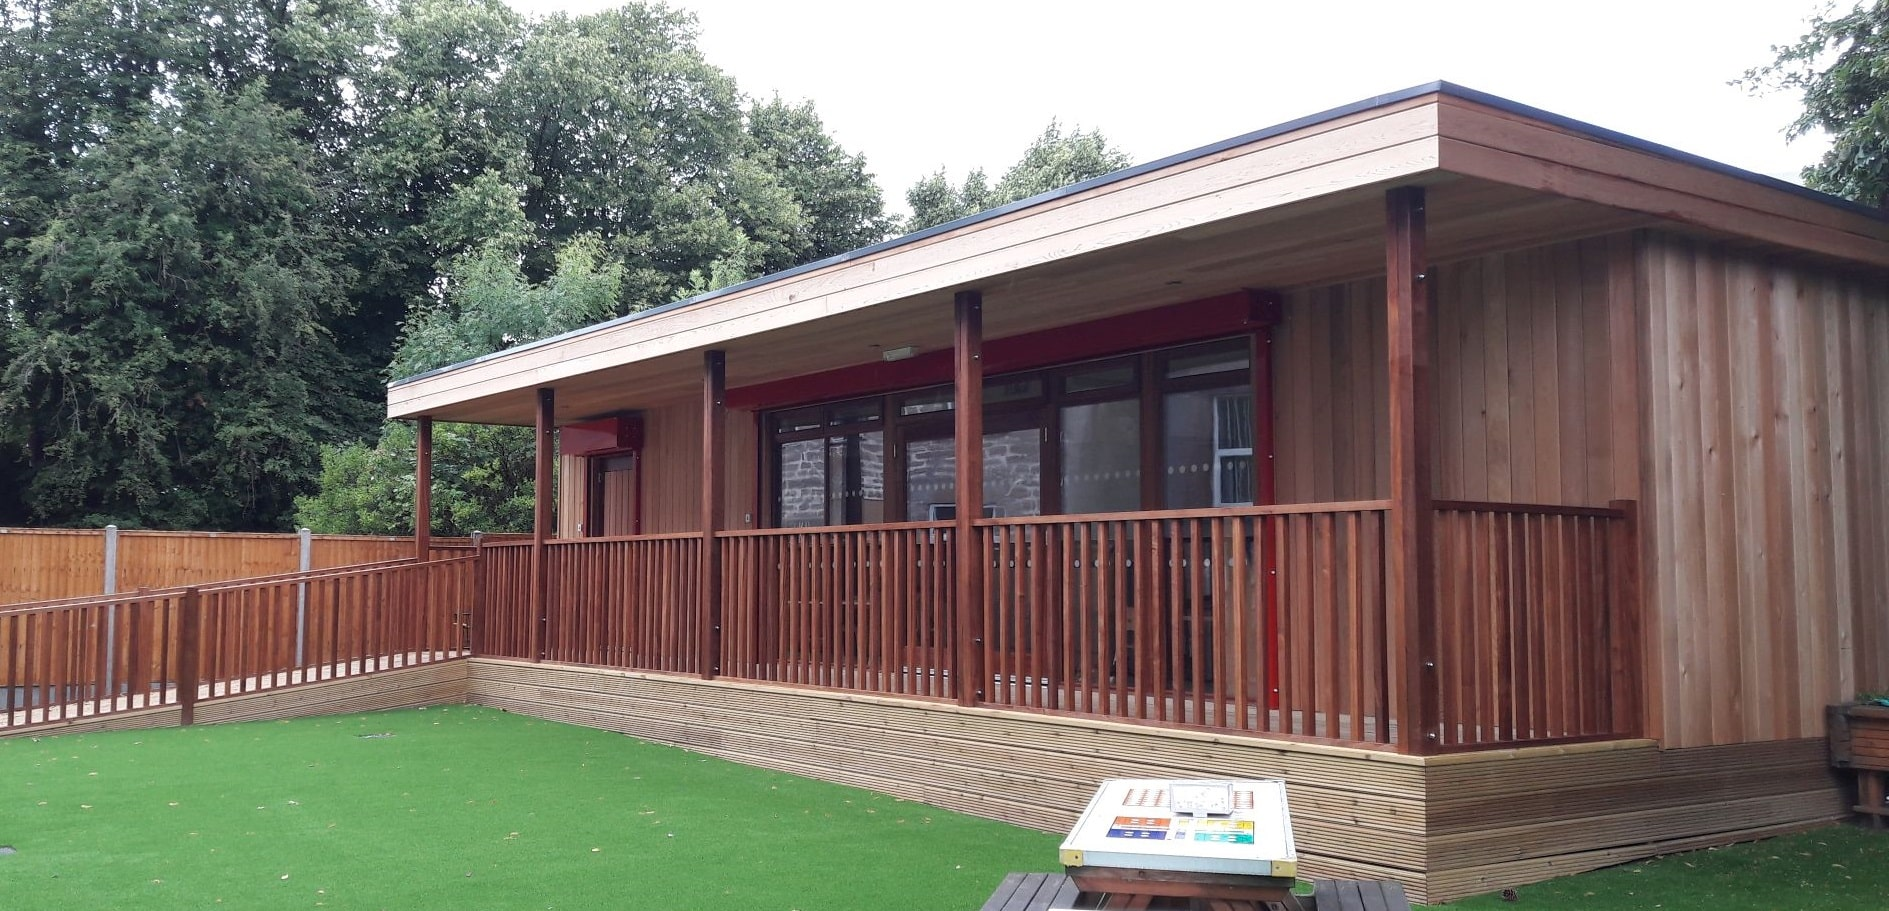 Eco-Nursery at Angels by Day Nursery in Nottingham